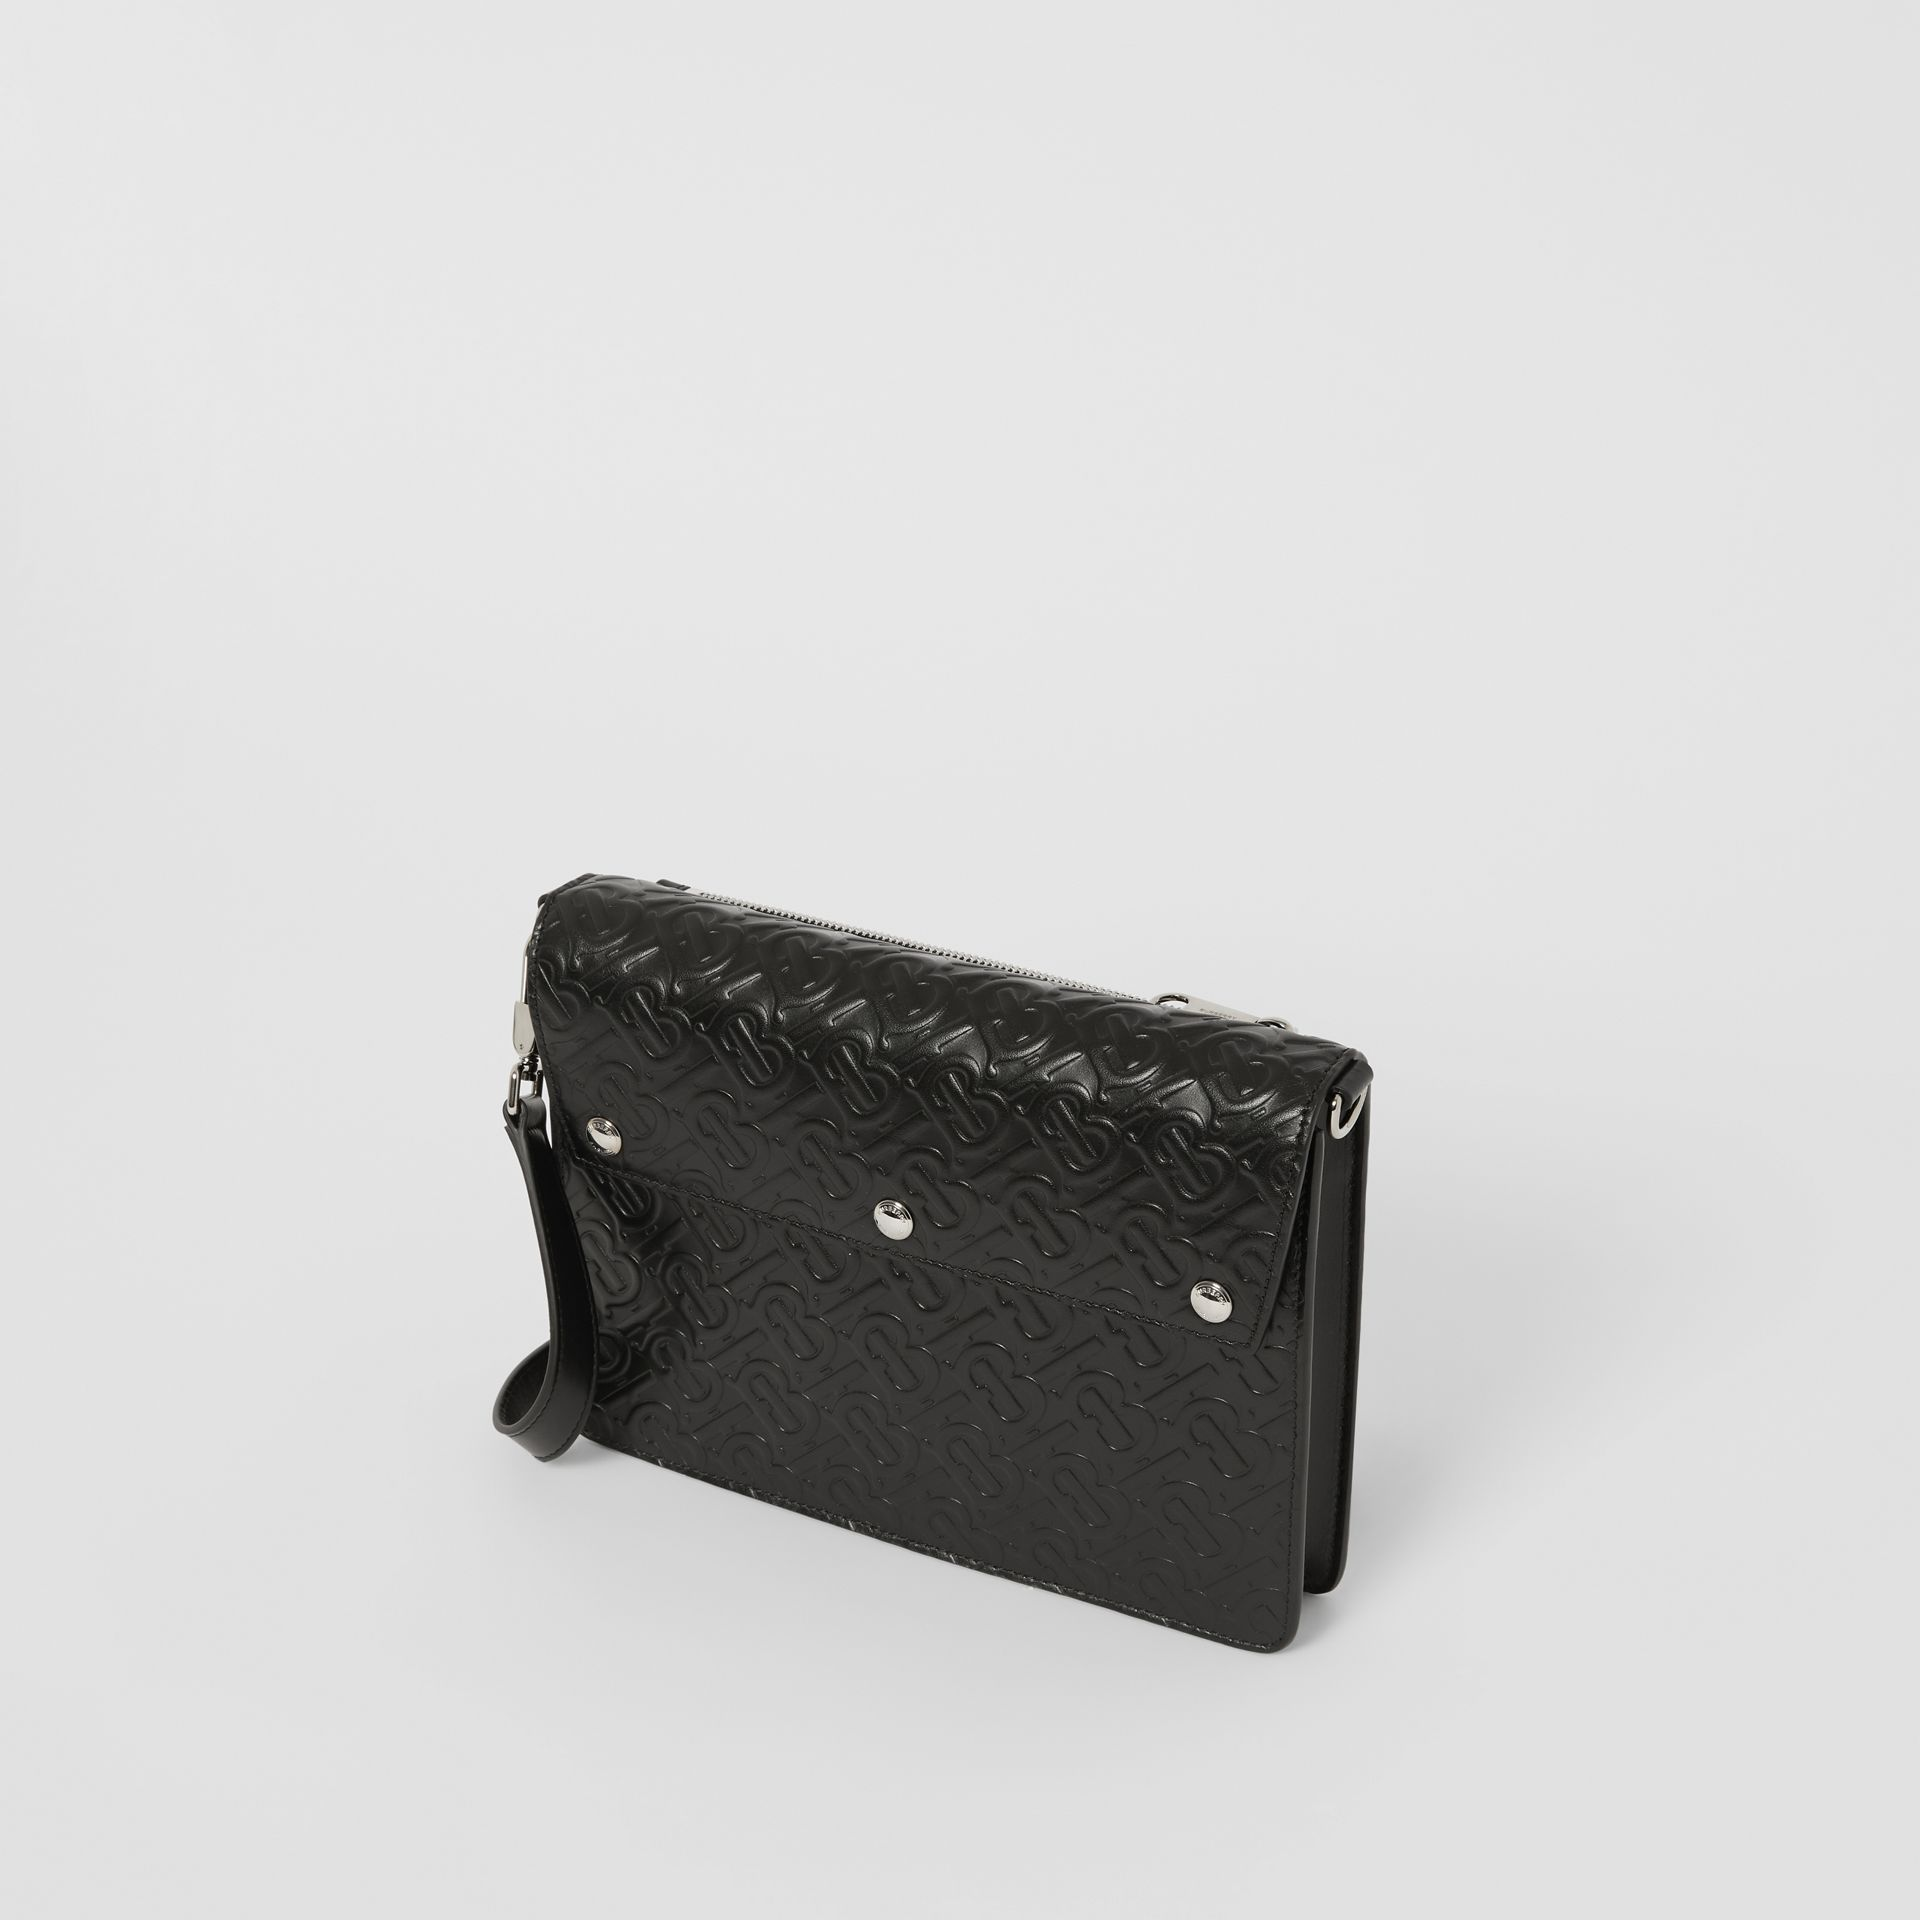 Triple Stud Monogram Leather Crossbody Bag in Black - Men | Burberry - gallery image 3